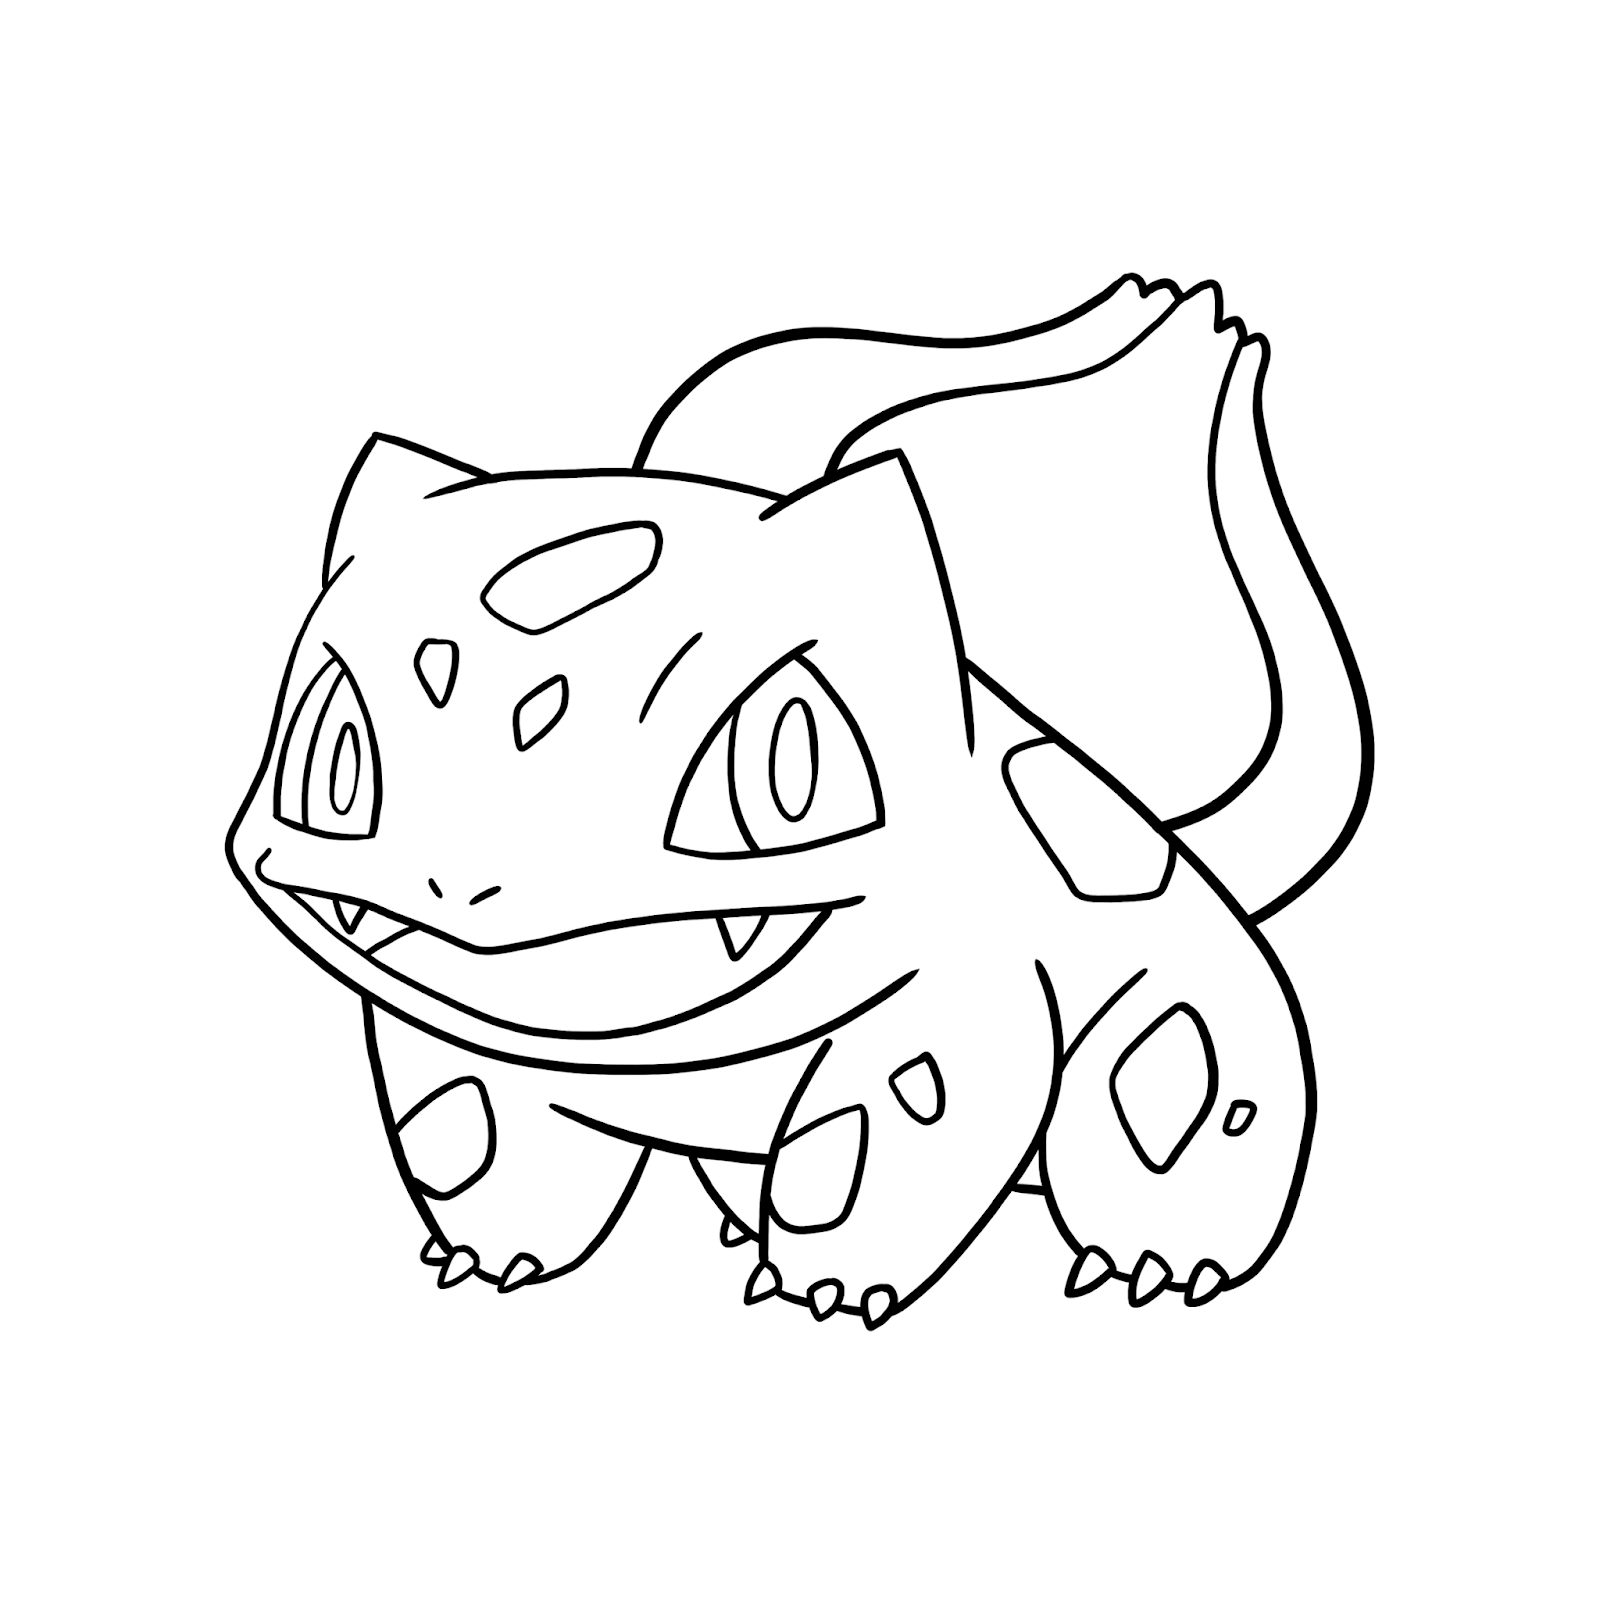 bulbasaur coloring page bulbasaur coloring pages free pokemon coloring pages bulbasaur page coloring